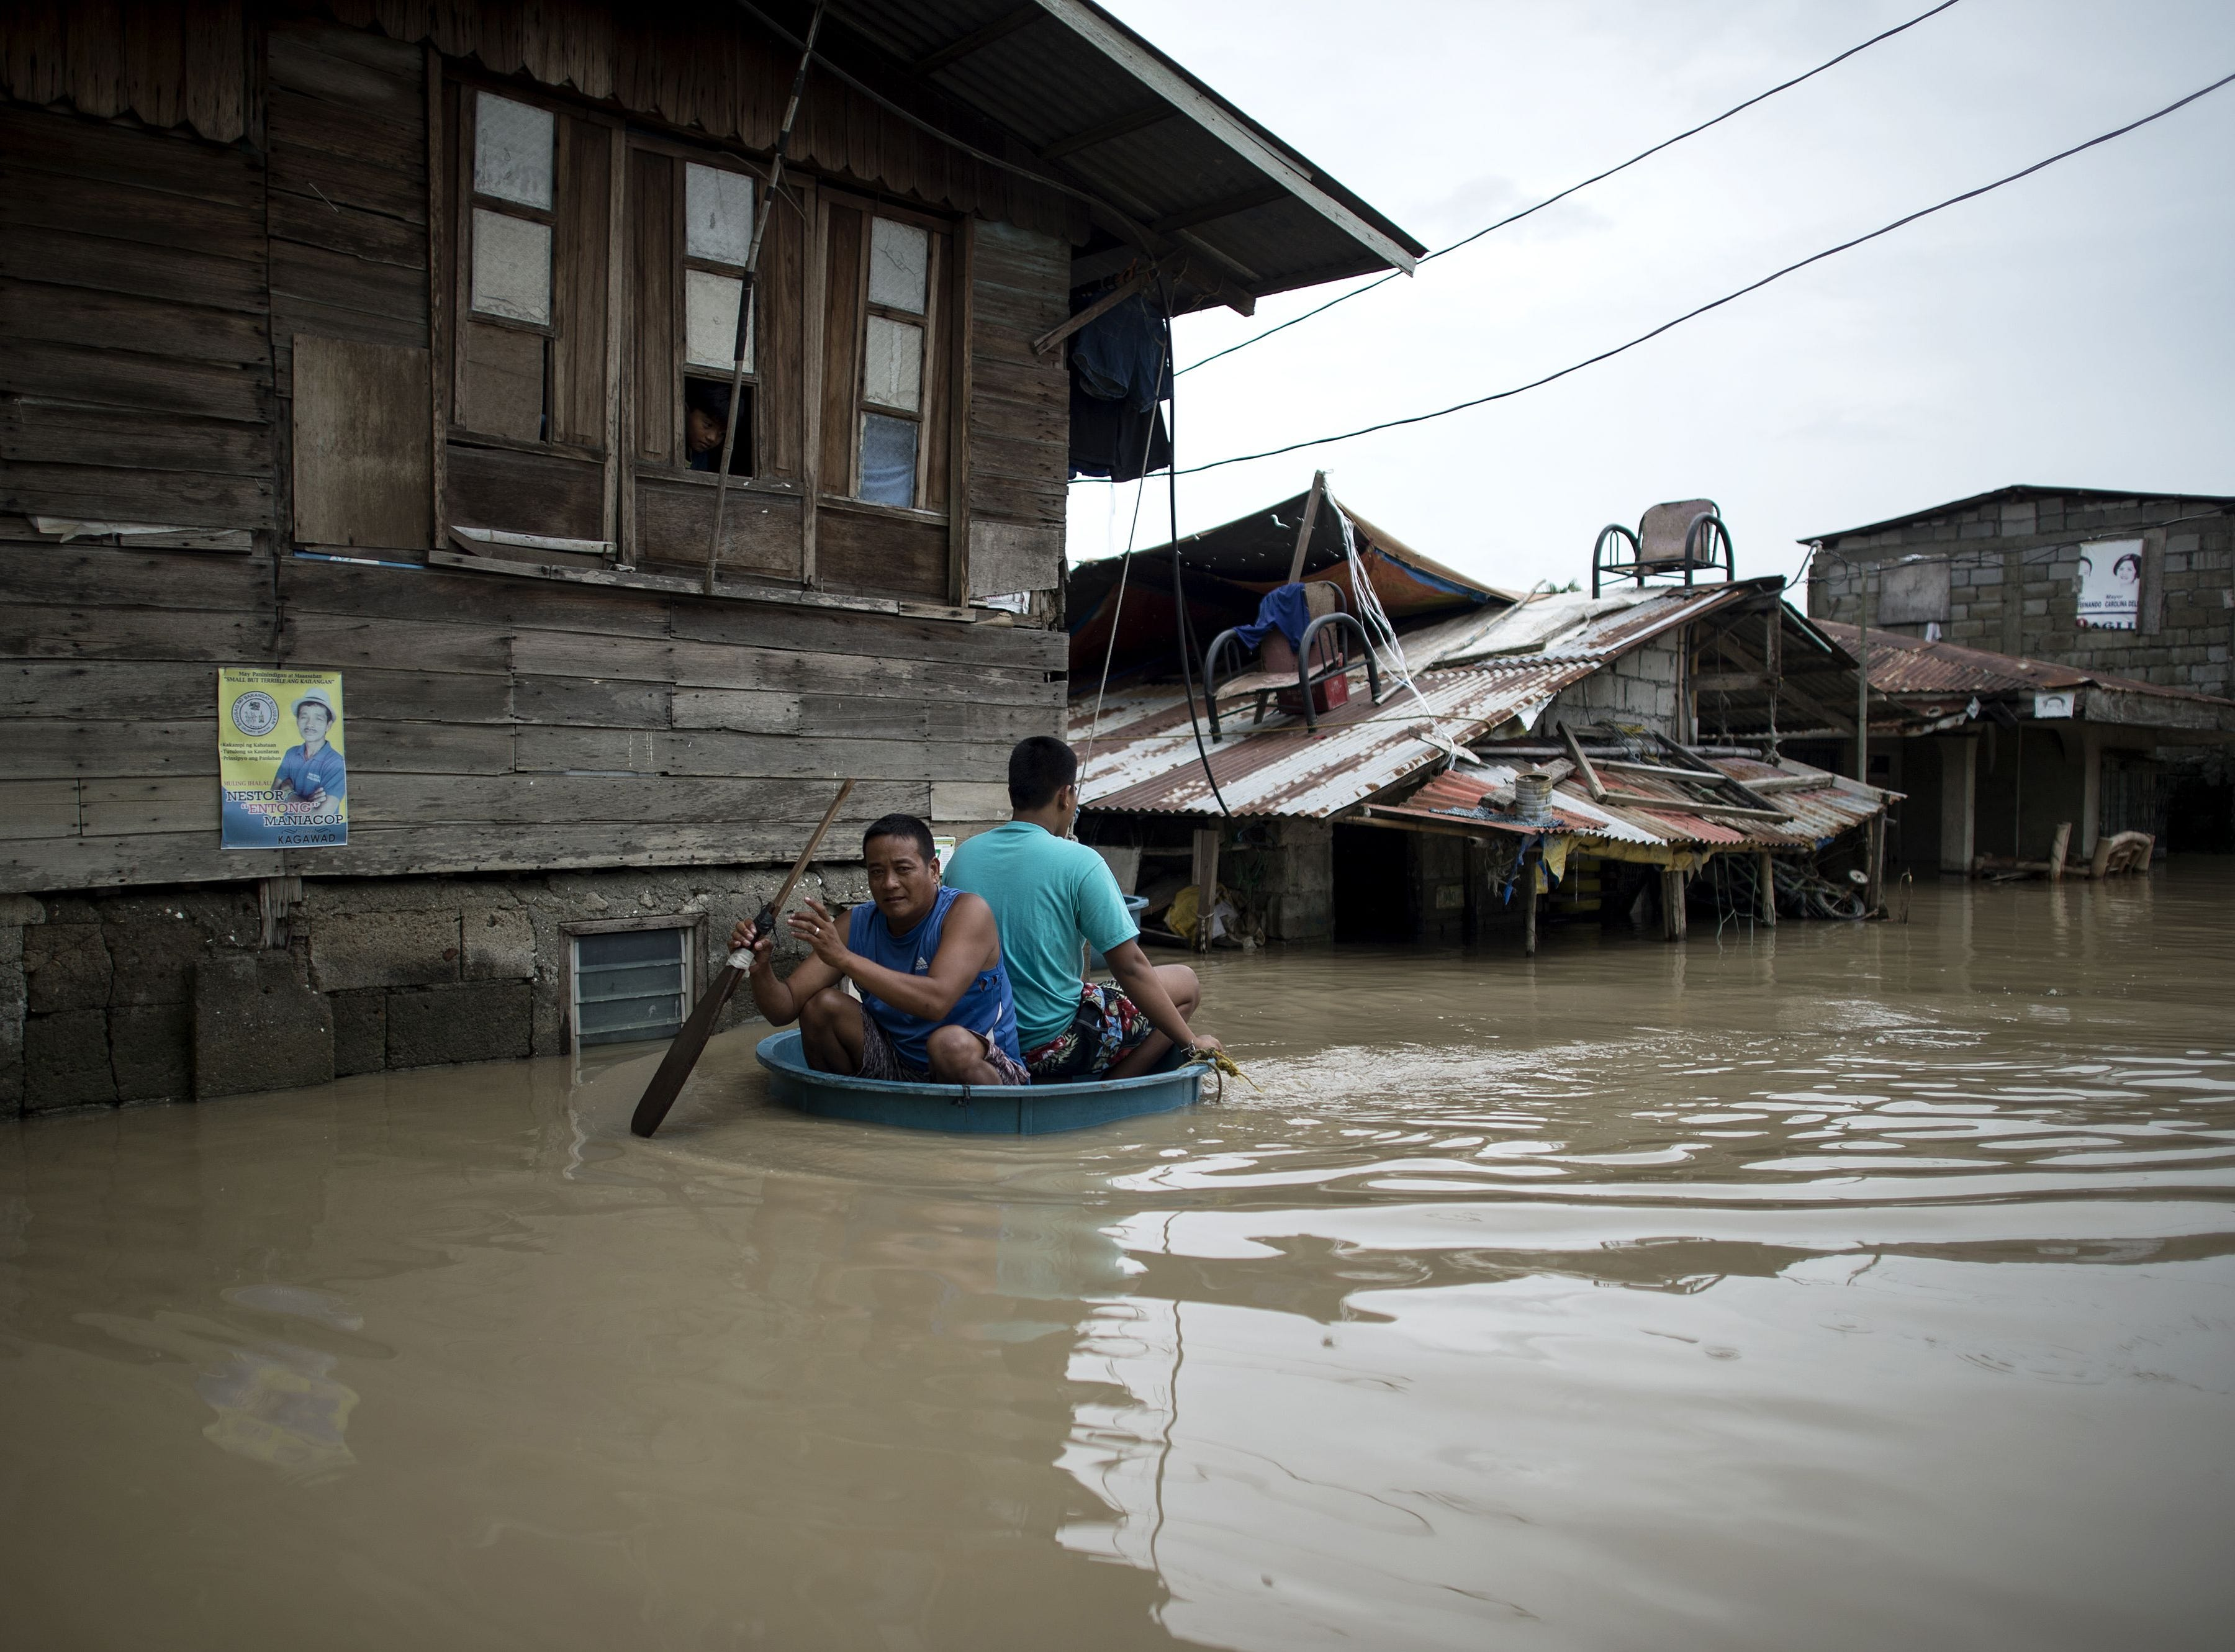 Men use a basin to cross a flooded street in the aftermath of Super Typhoon Mangkhut at Salonga Compound in Calumpit, Bulacan on Sept. 16, 2018.